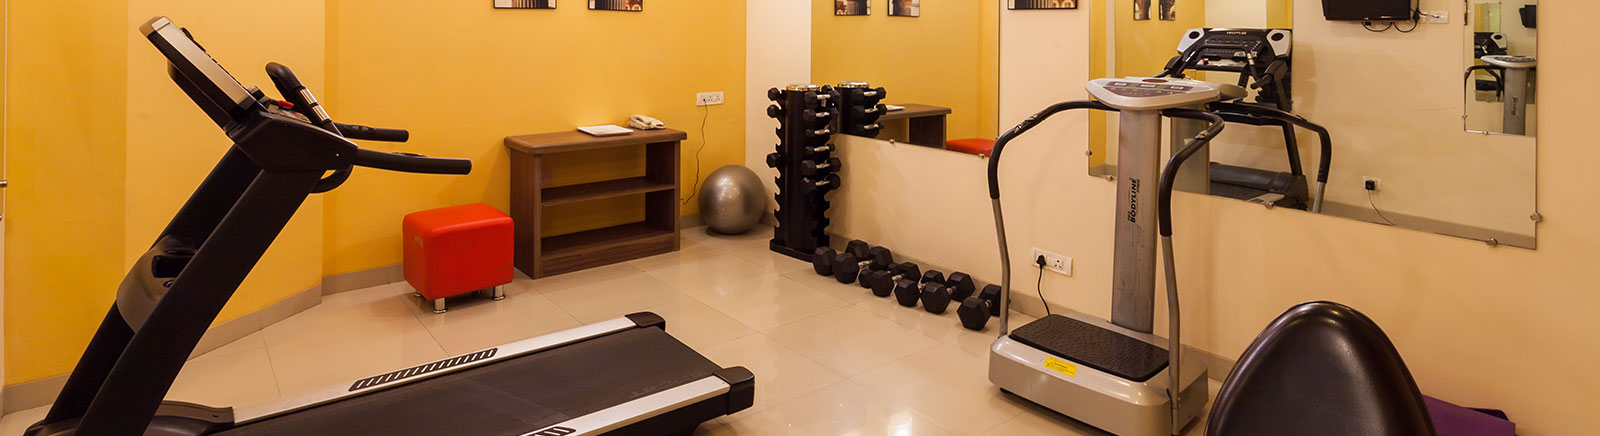 Ginger Indore Hotel Services & Facilities